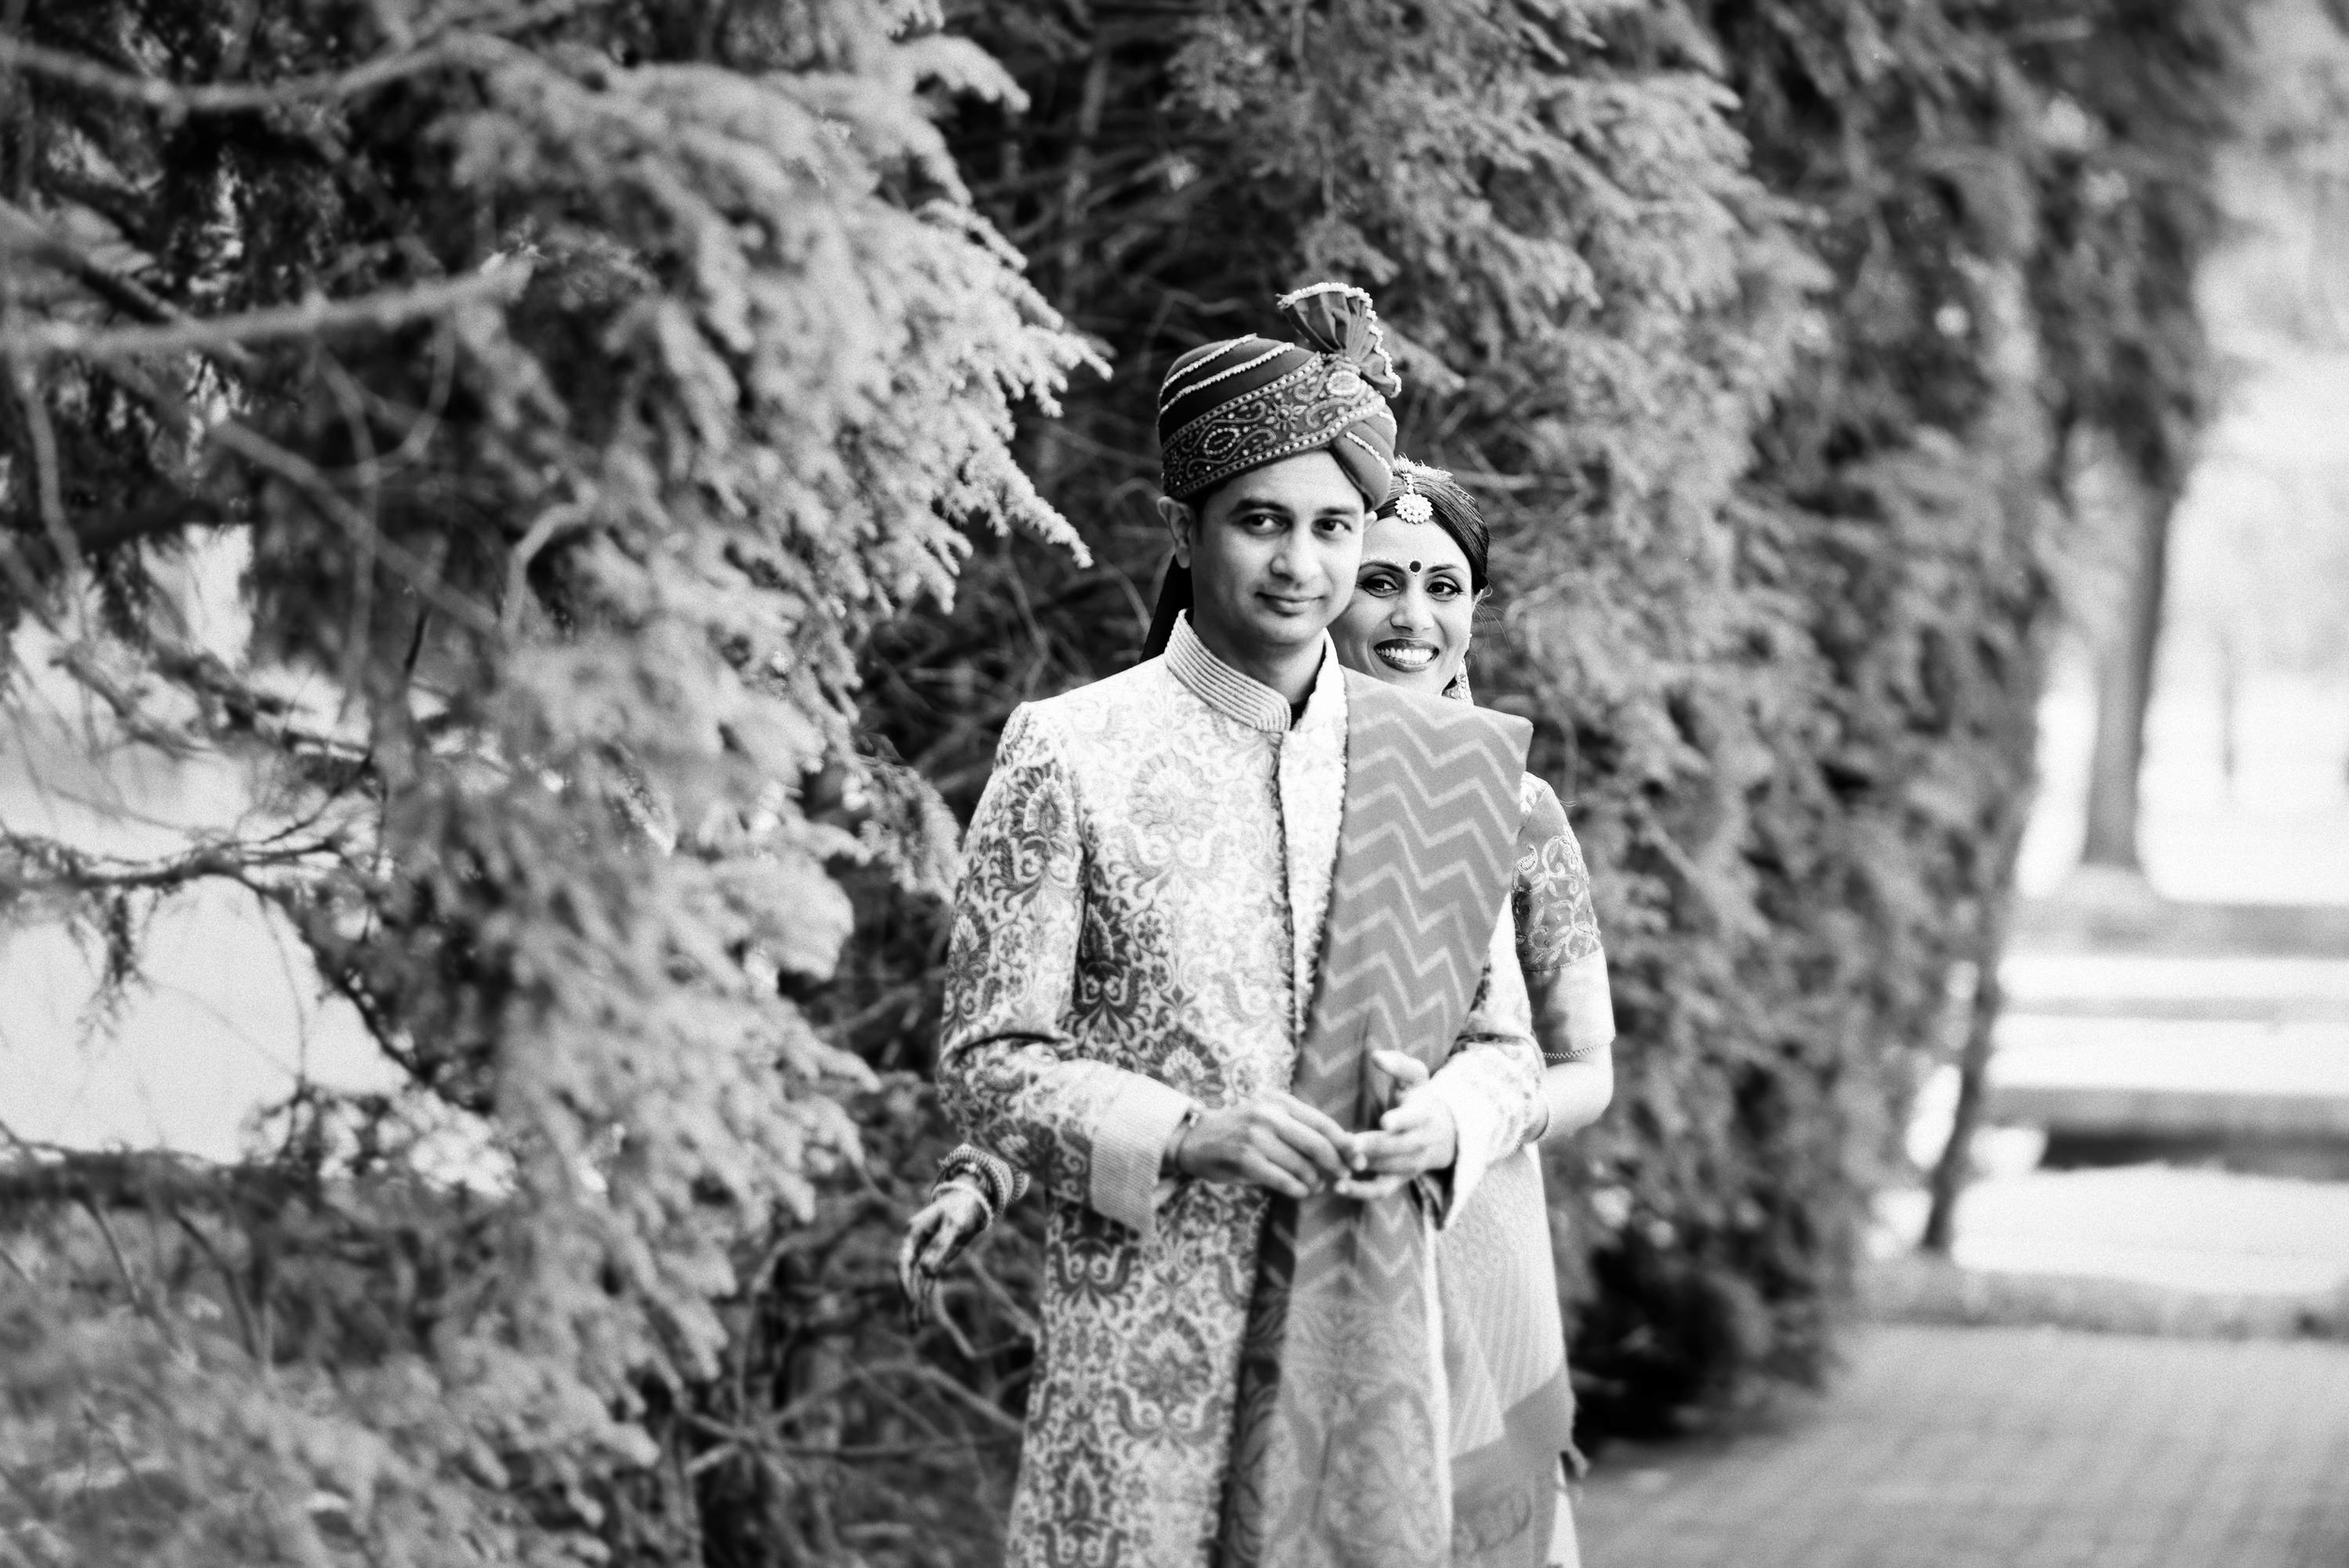 This picture is a amalgamation of curiosity, happiness, excitement & a beautiful moment. Groom was waiting for bride for first look with mixed feelings but composing himself for a delightful moment.